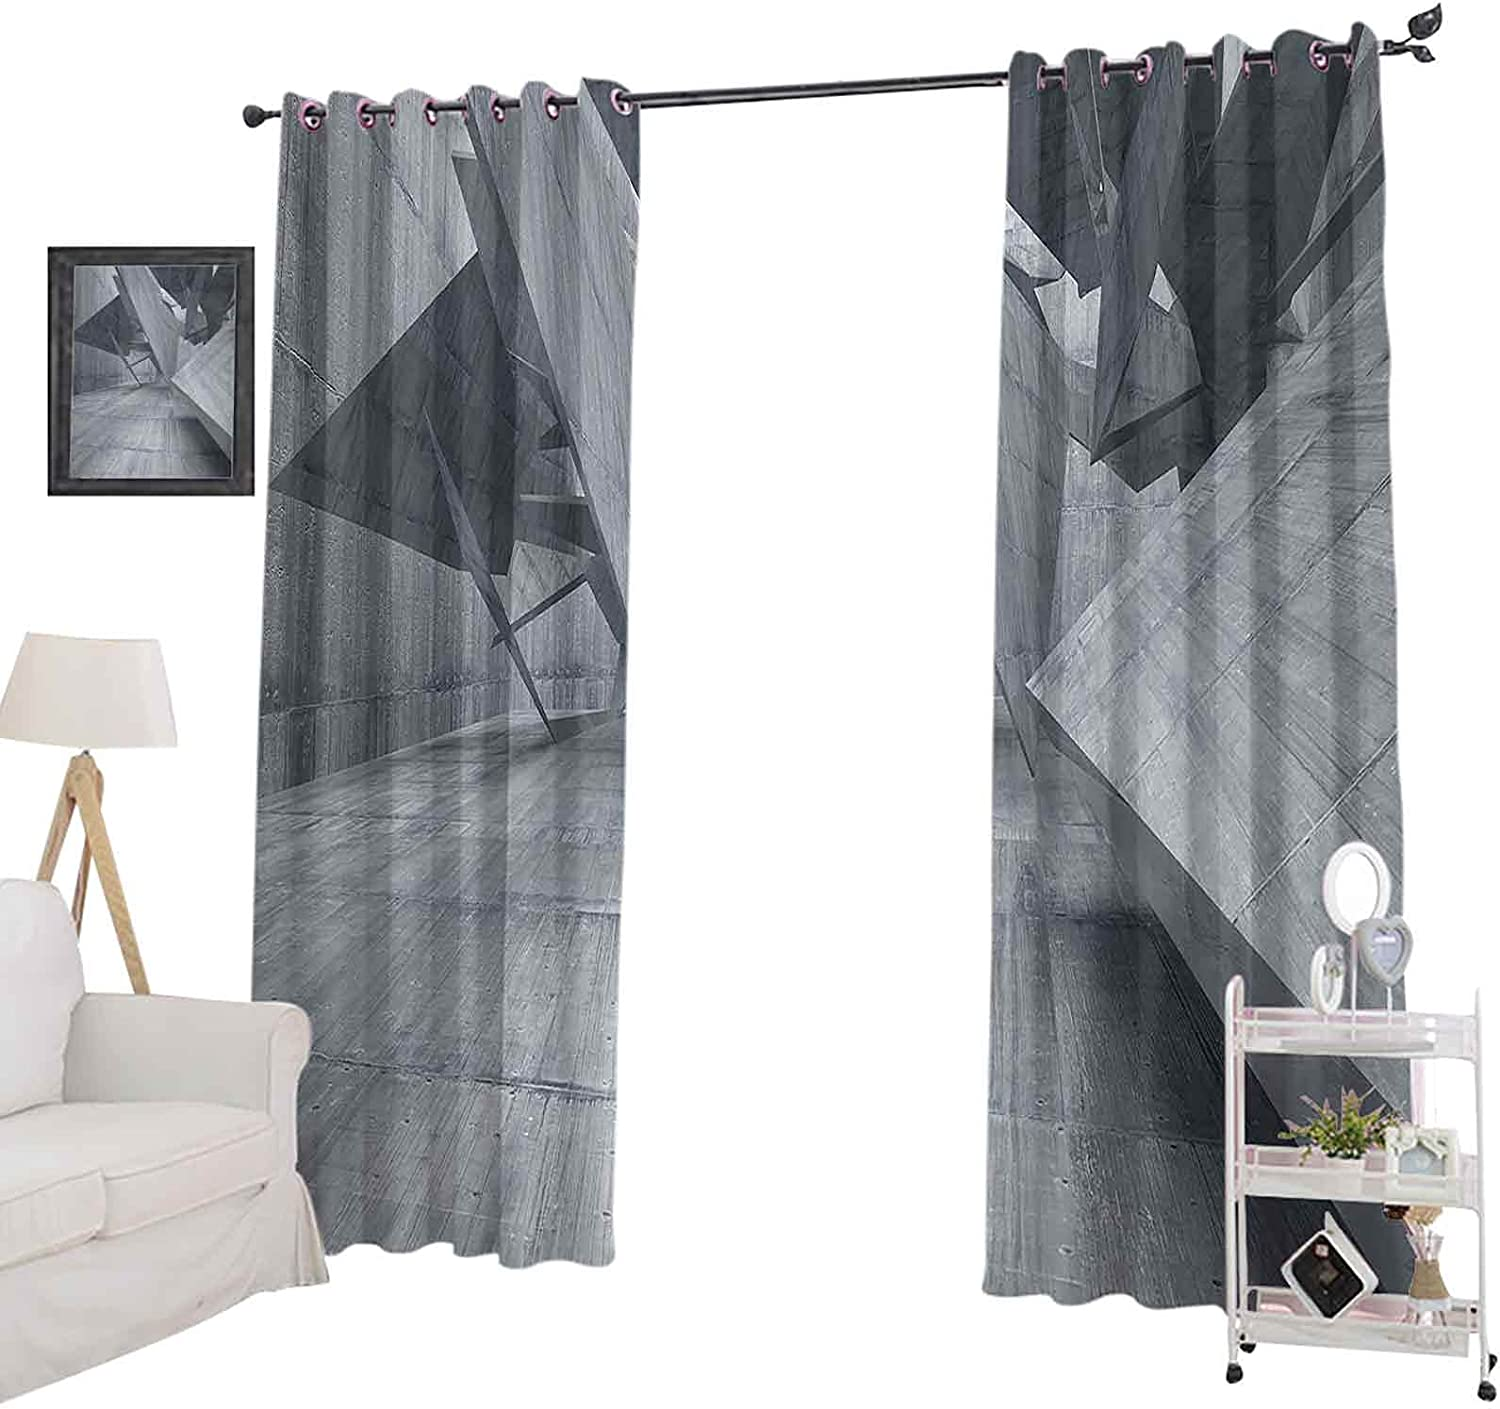 Thermal Max 81% OFF Insulated Curtains Drapes 84 Window Inches Animer and price revision Curtai Long